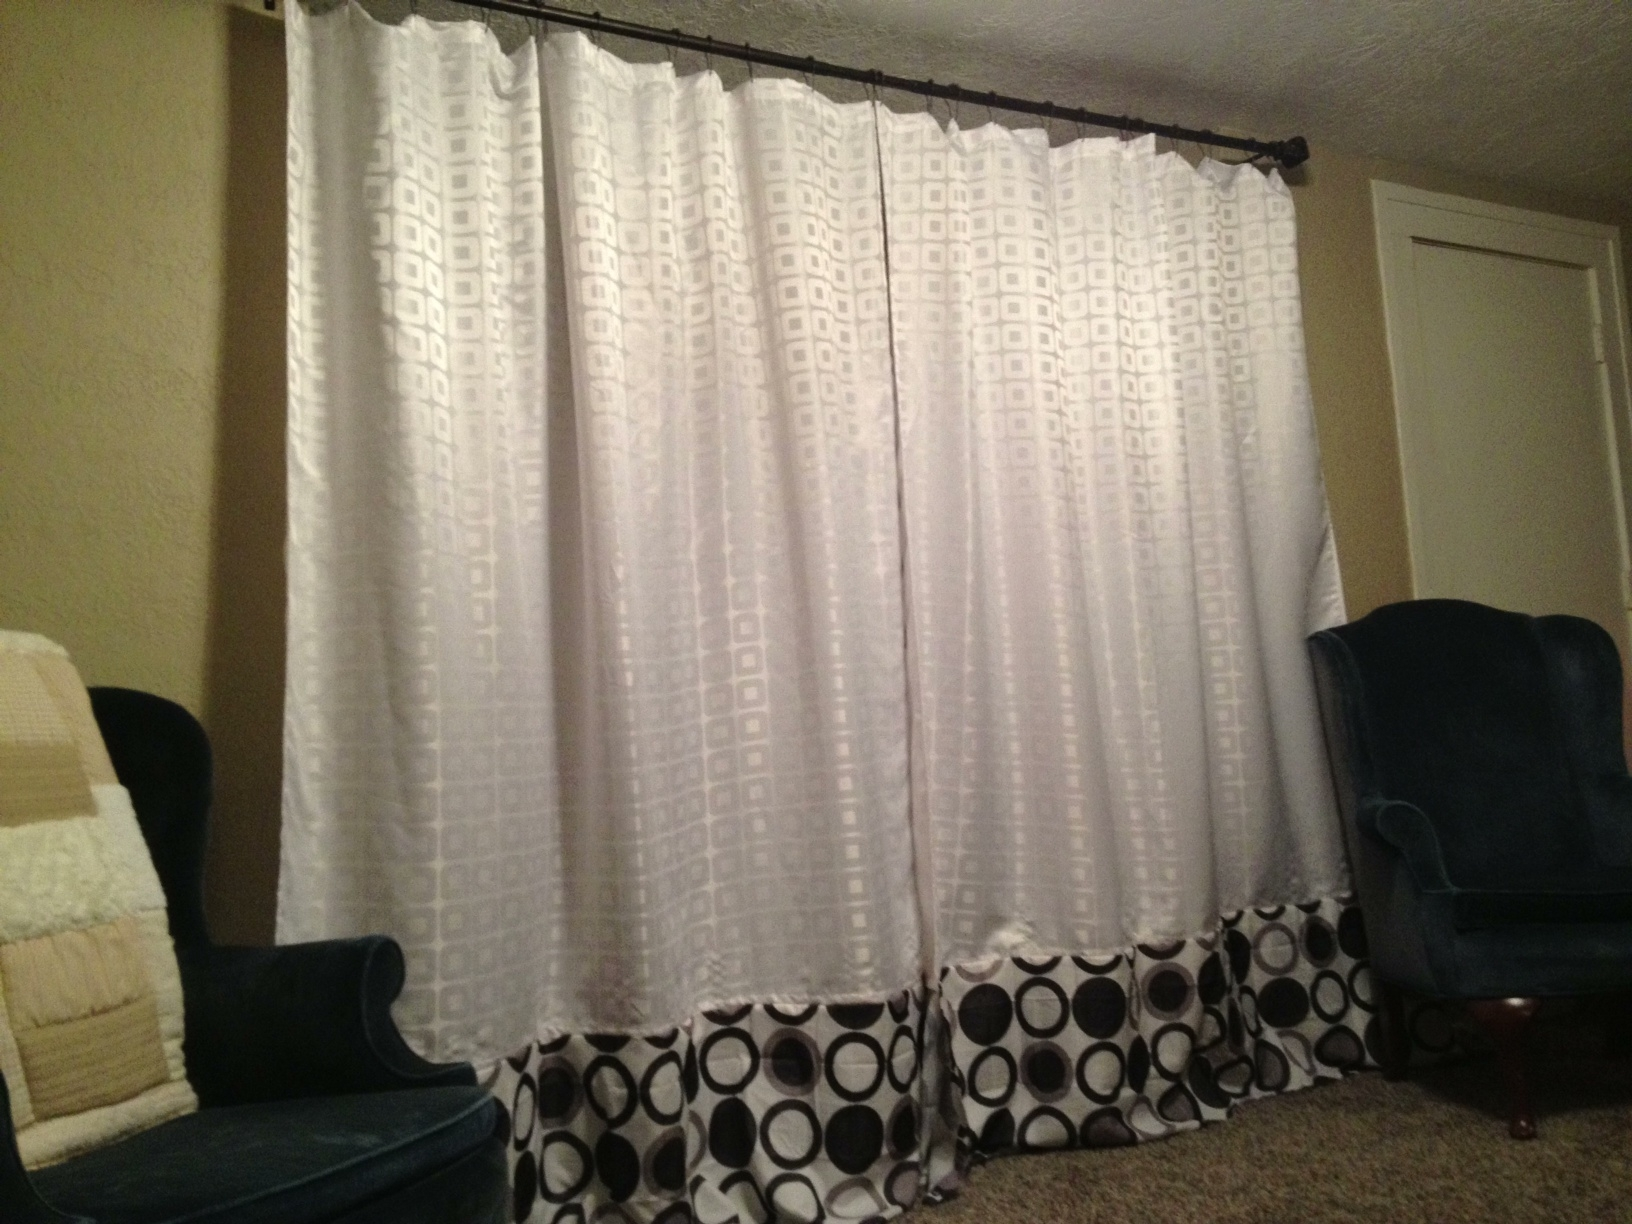 Hanging Curtains Best 25 How To Hang Curtains Ideas Only On For Hanging Curtains (View 5 of 25)